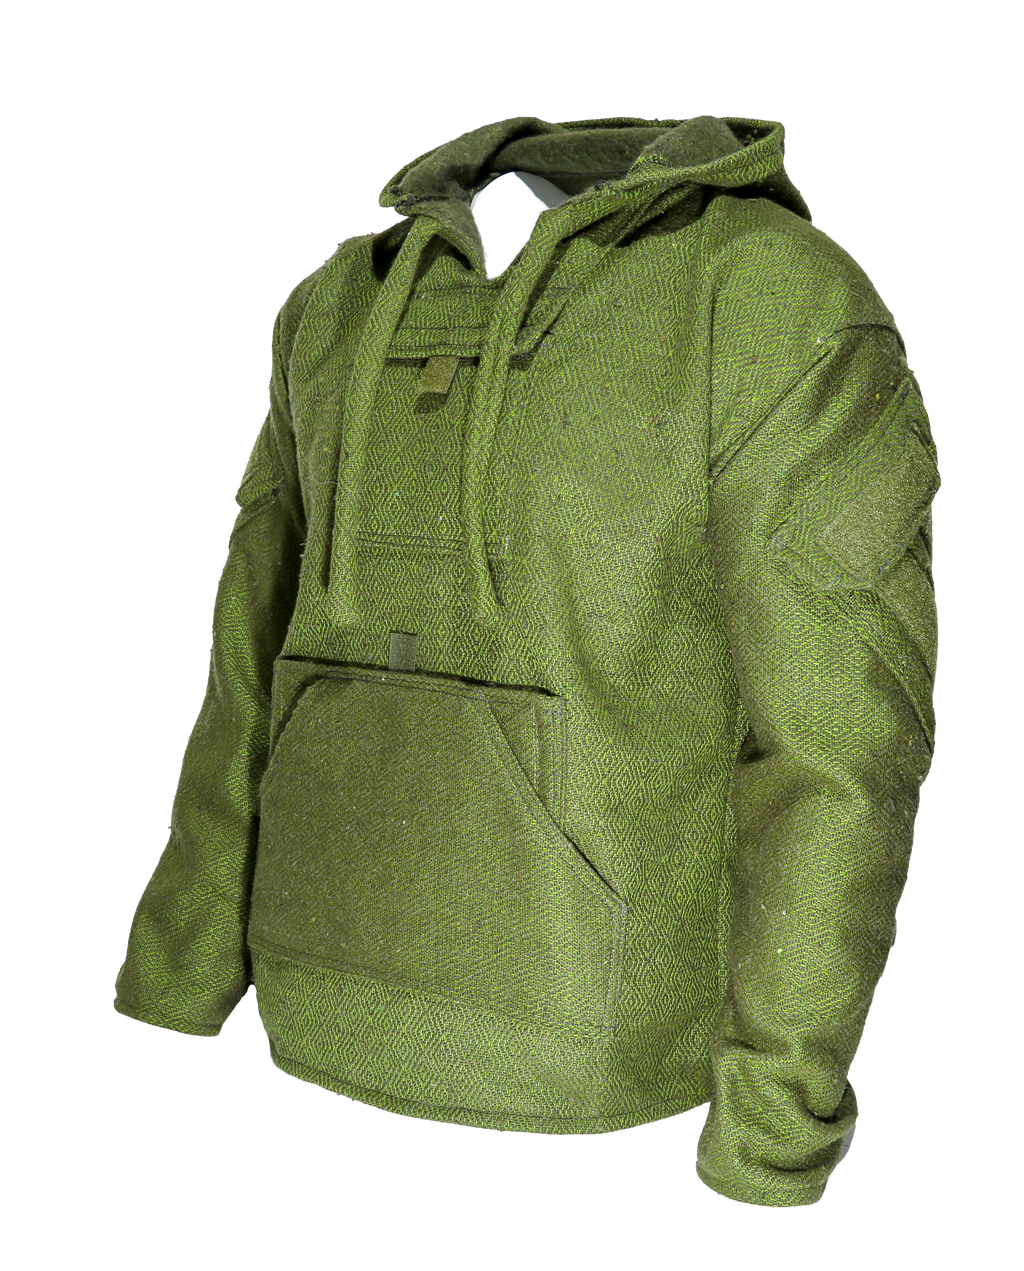 Cali Combat Hoodie - Green and Grey Diamond